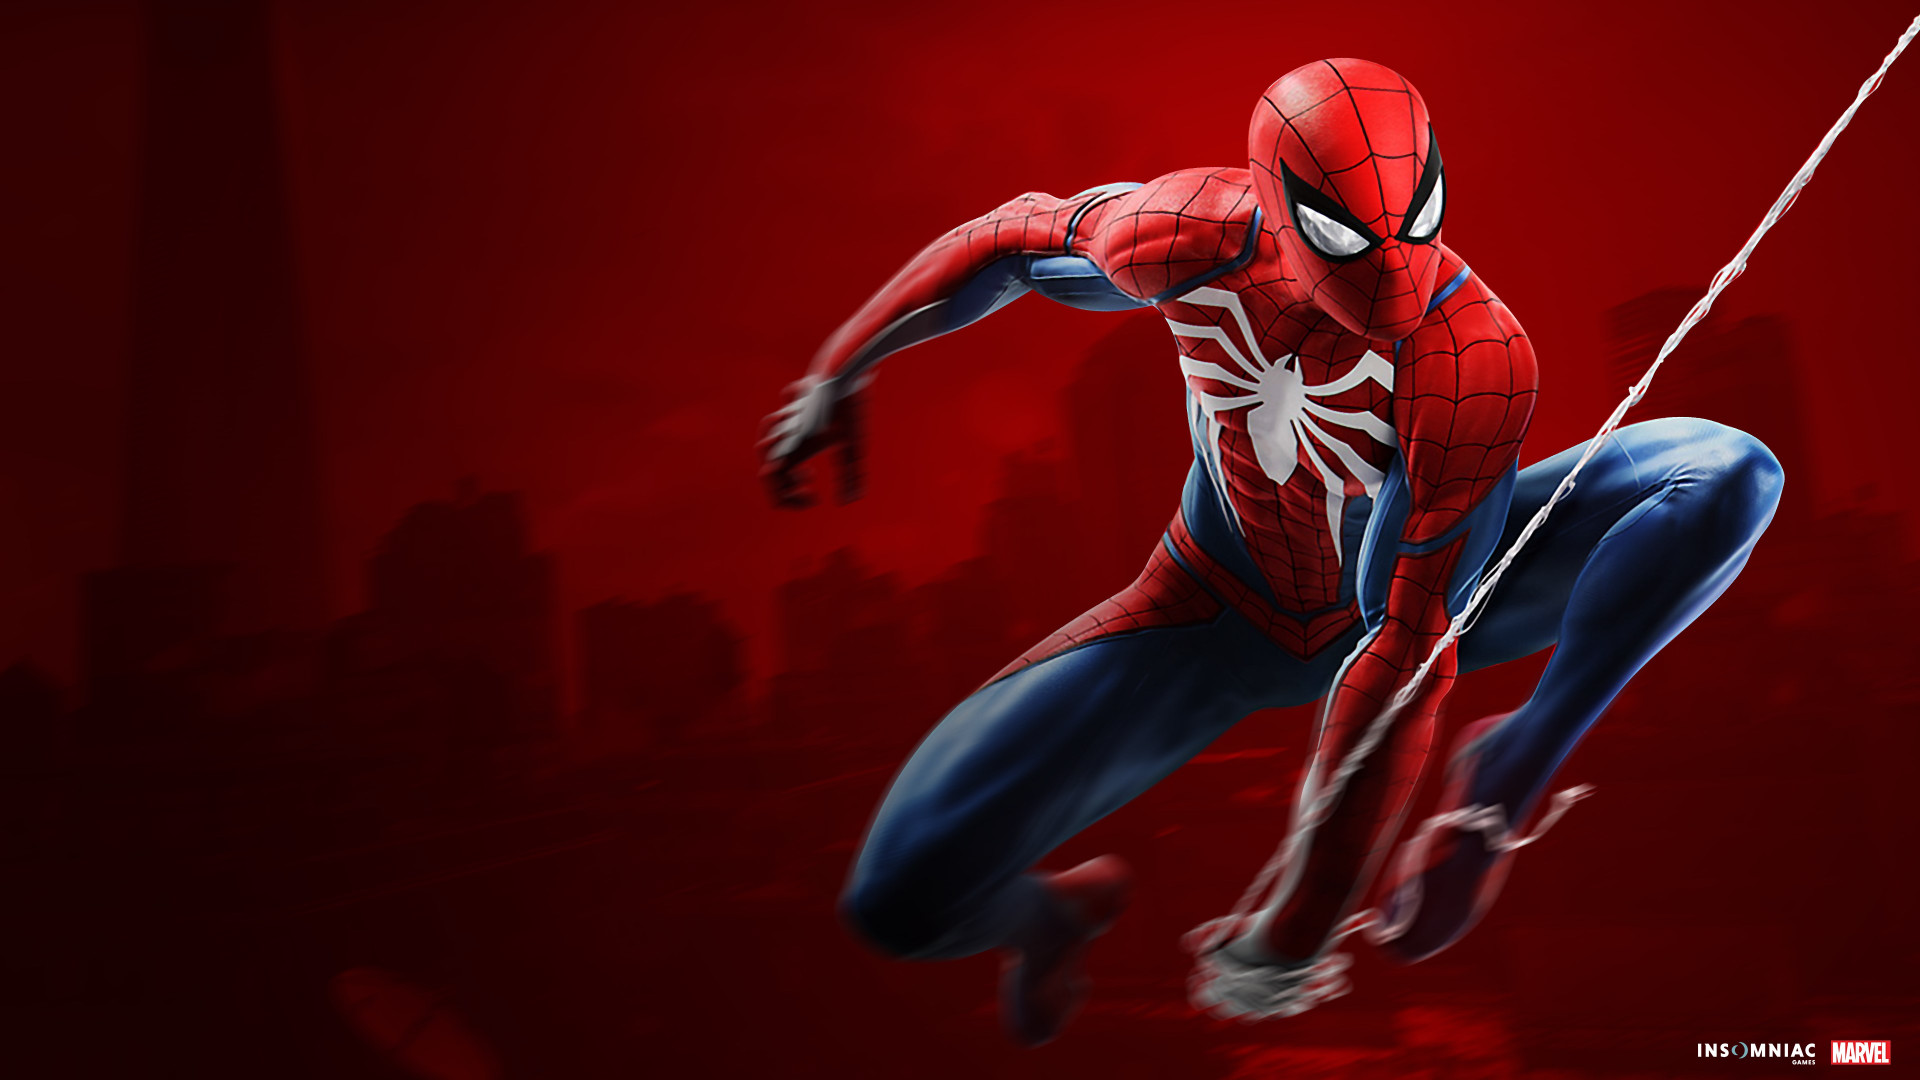 Game Of Spider Man Hd Wallpaper: Download Wallpaper: Spider Man Game On PS4 1920x1080